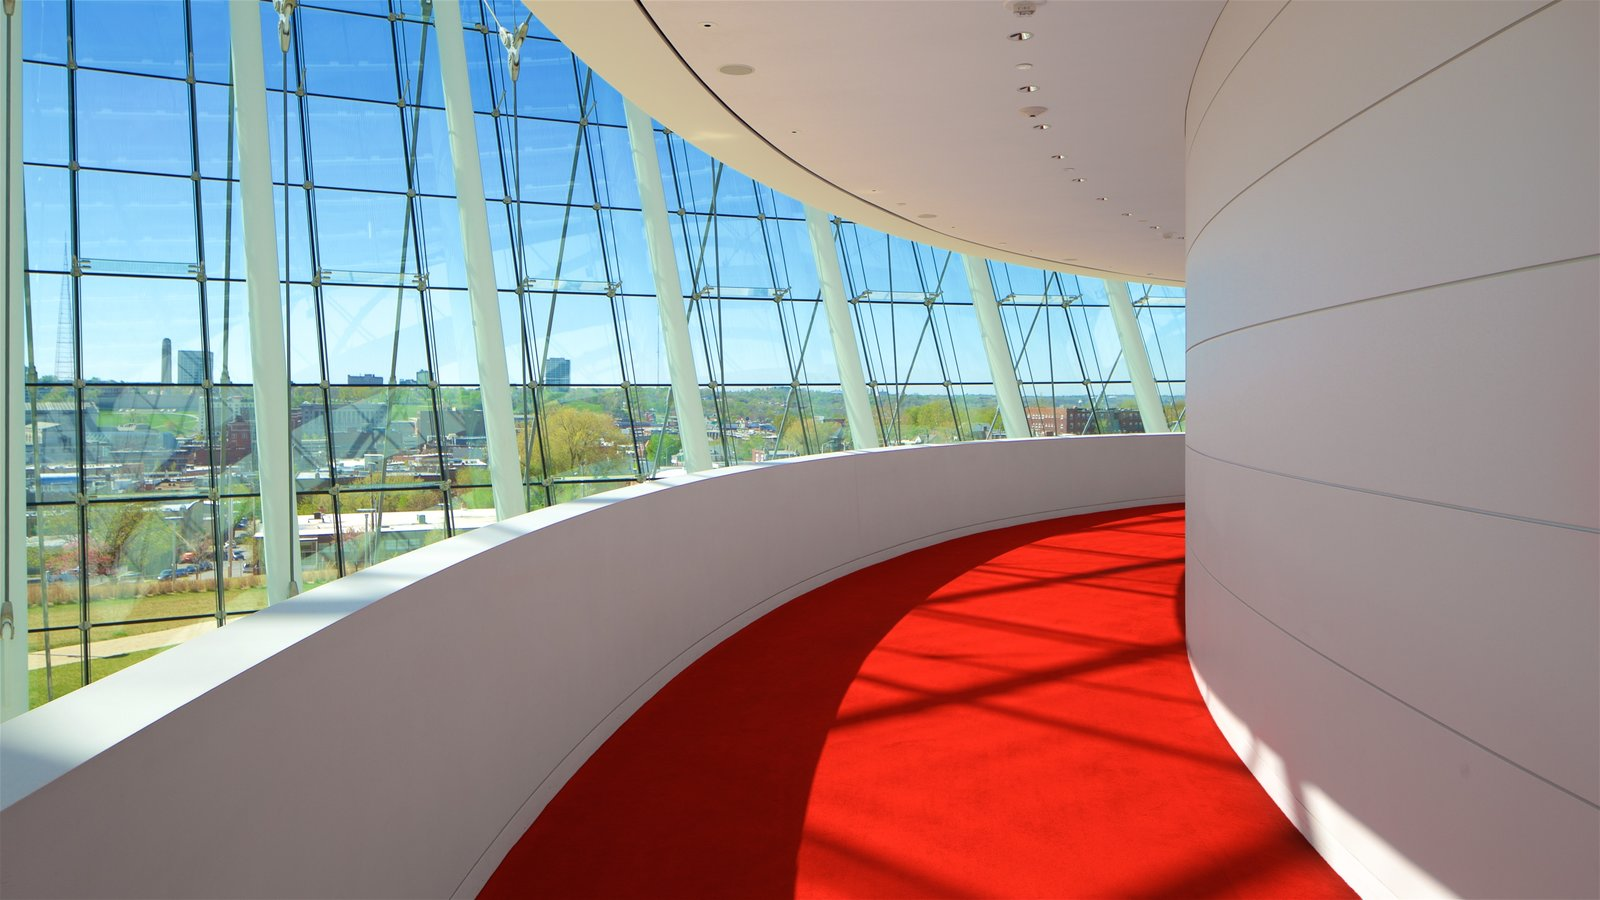 Kauffman Center for the Performing Arts which includes modern architecture and interior views